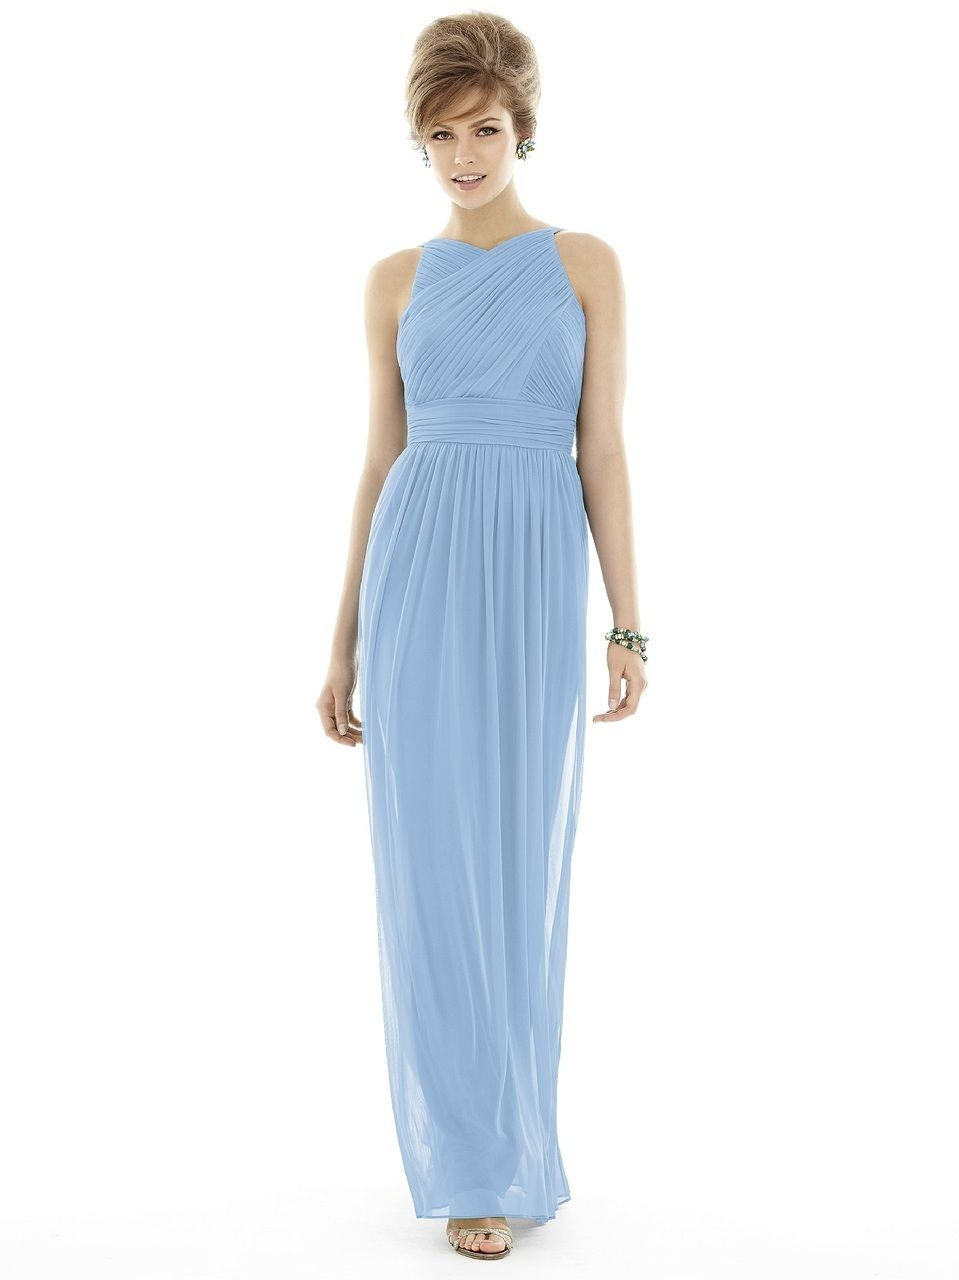 Alfred sung style d692 in 32 colours alfred sung alfred sung alfred sung style d692 in 32 colours bridesmaids dresses online ombrellifo Gallery